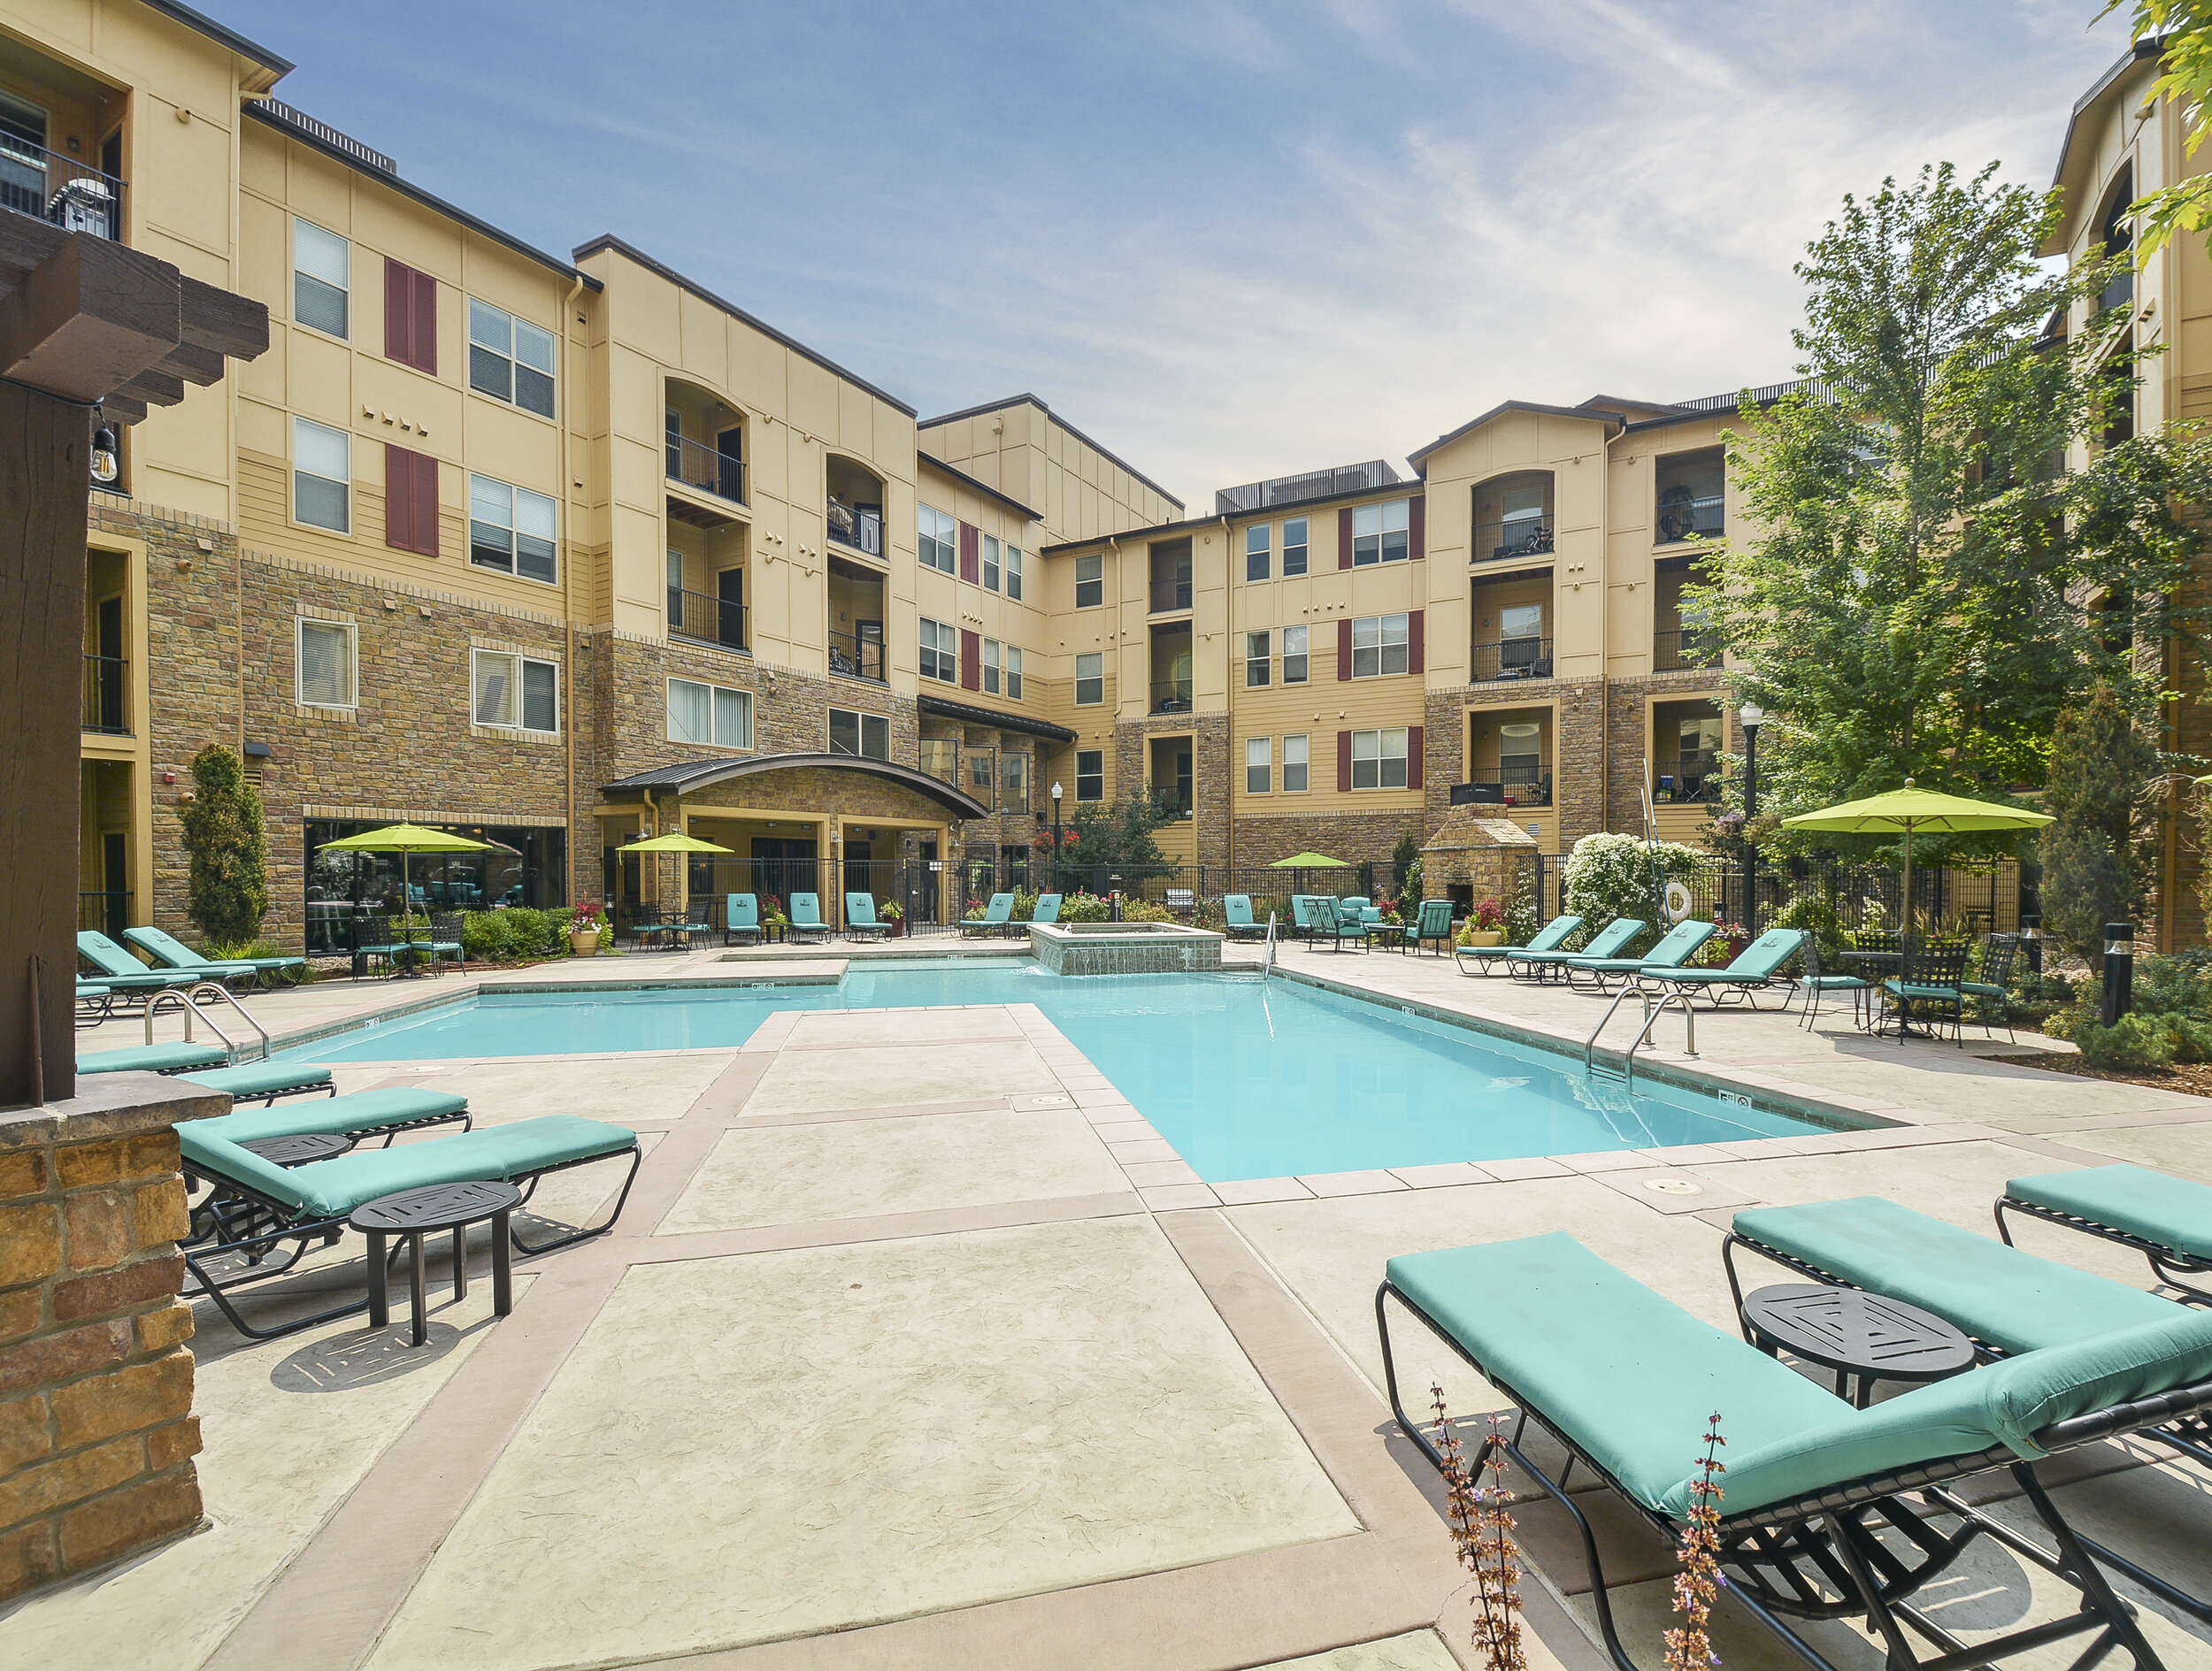 11-Take in the Comforts of the Year-Round Heated Swimming Pool.jpg